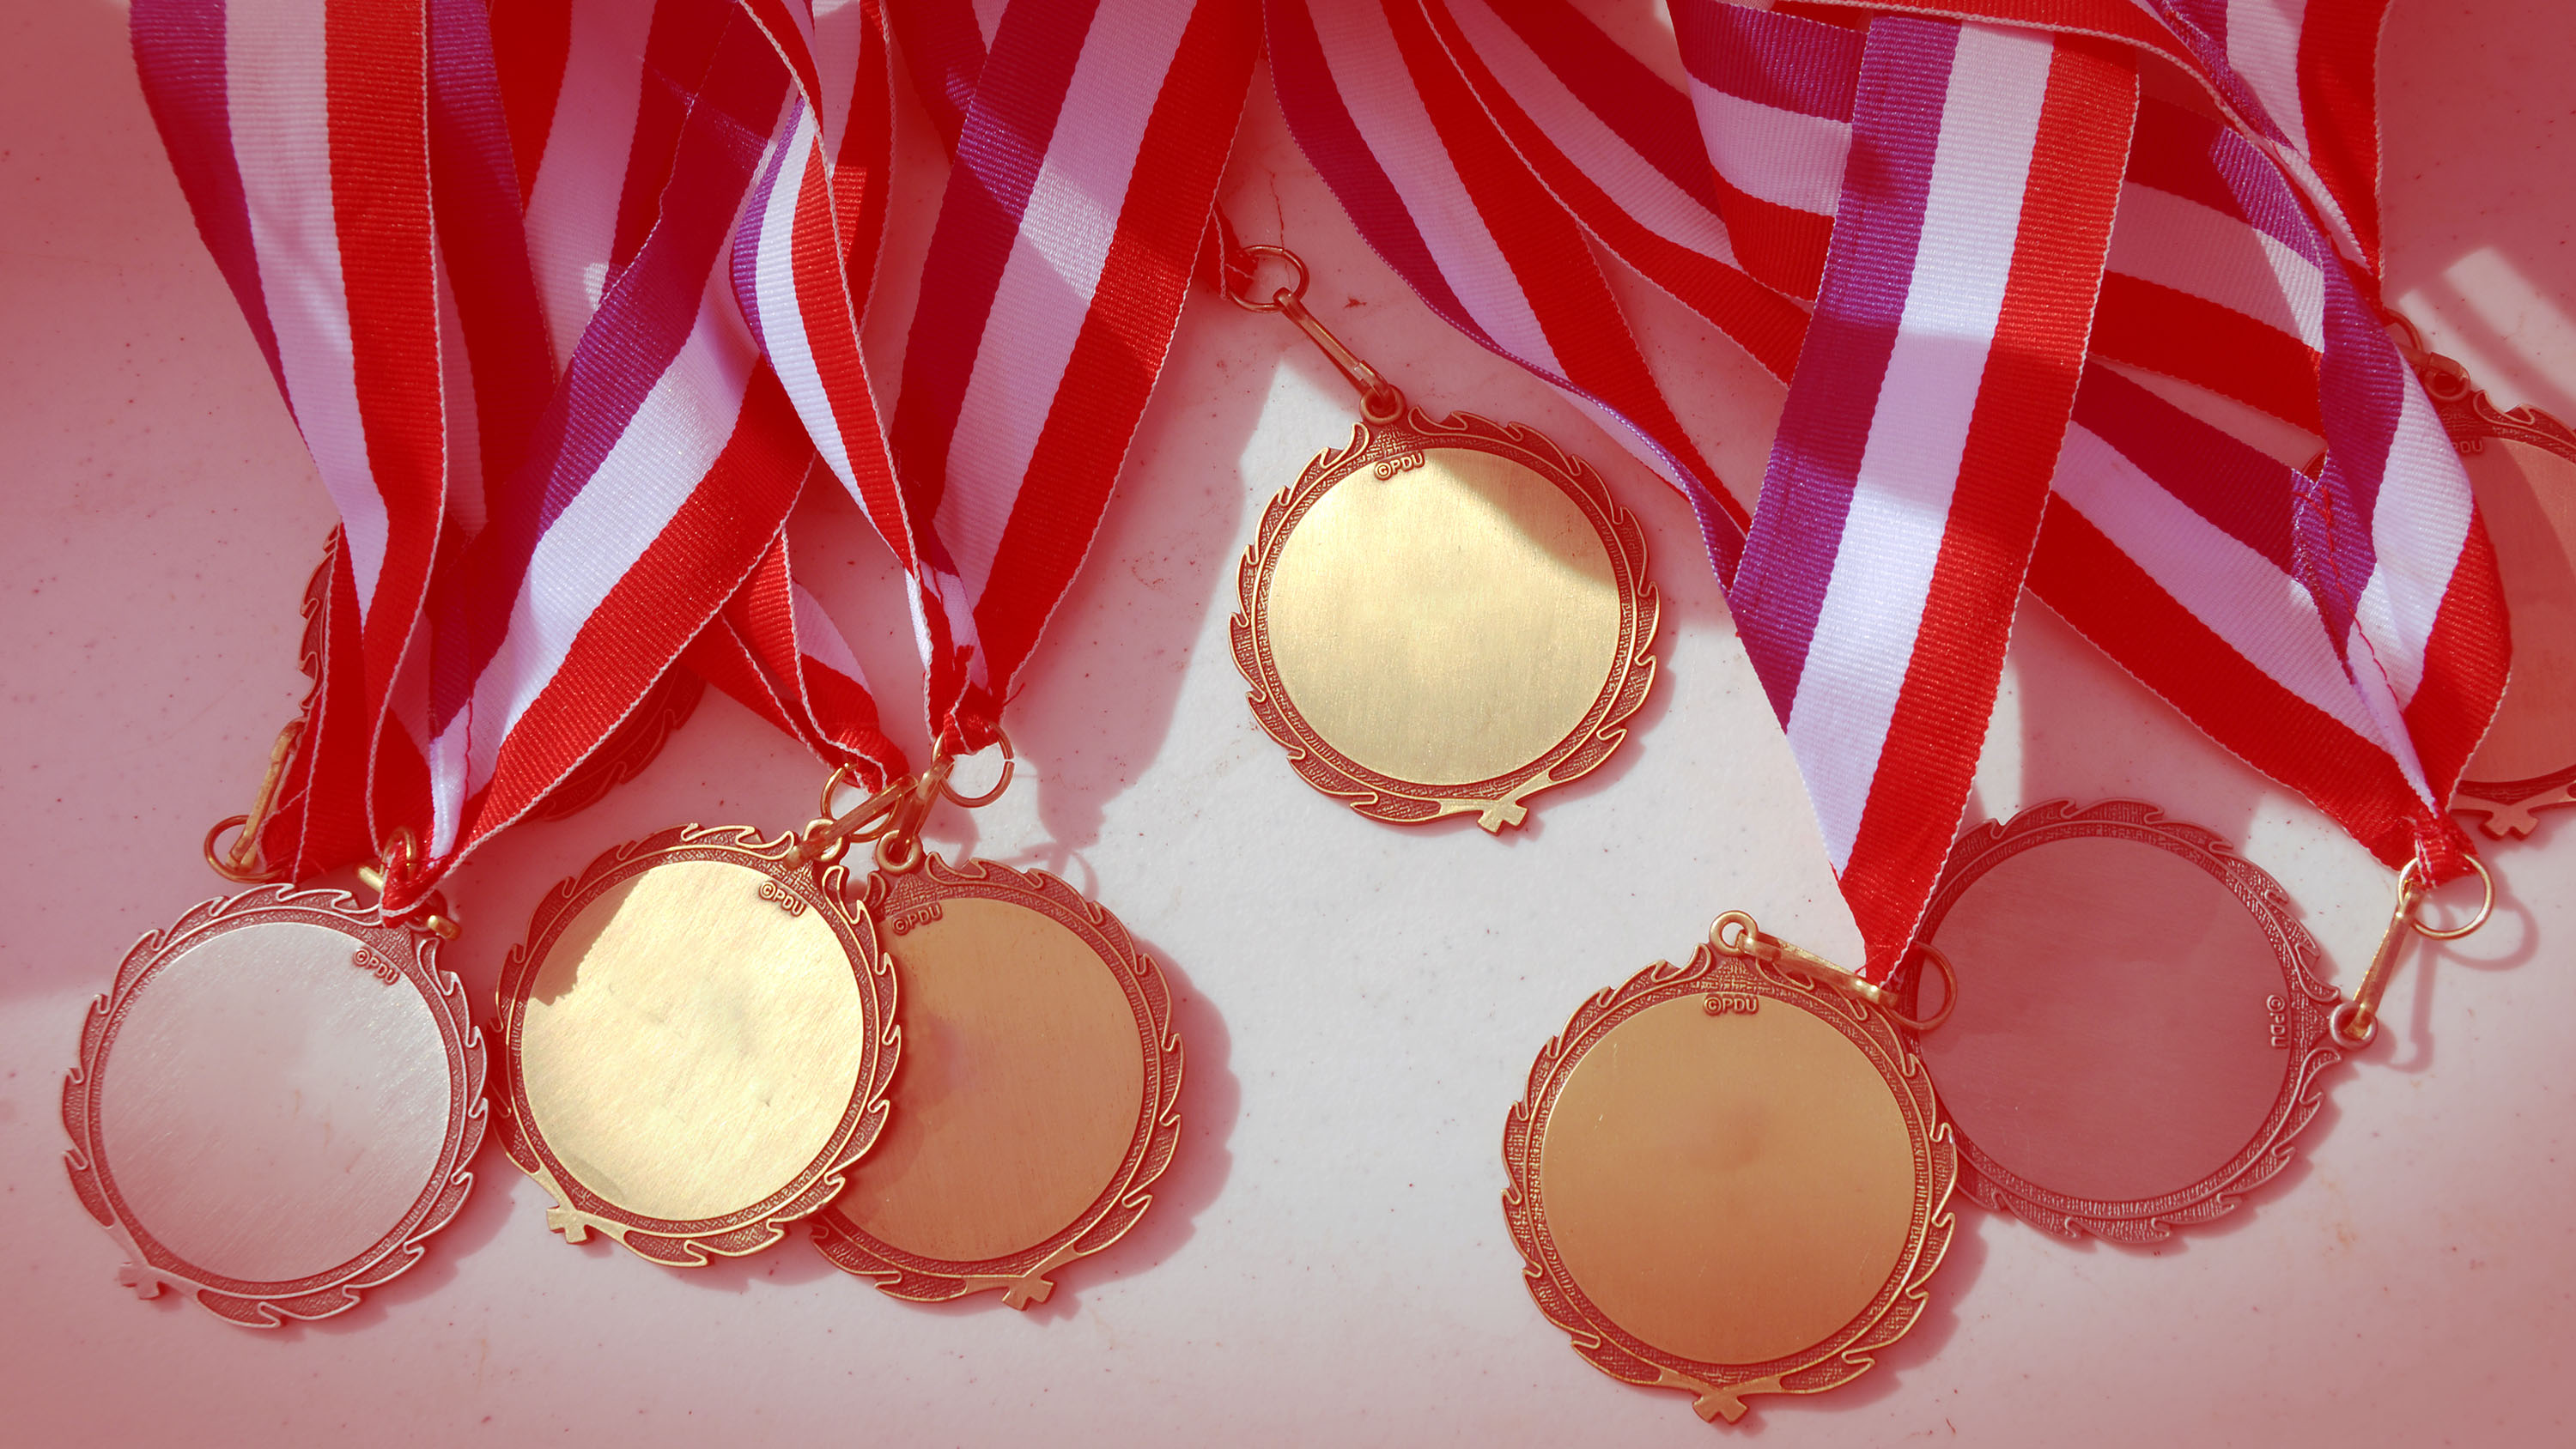 A photo of medals with a light red color overlay